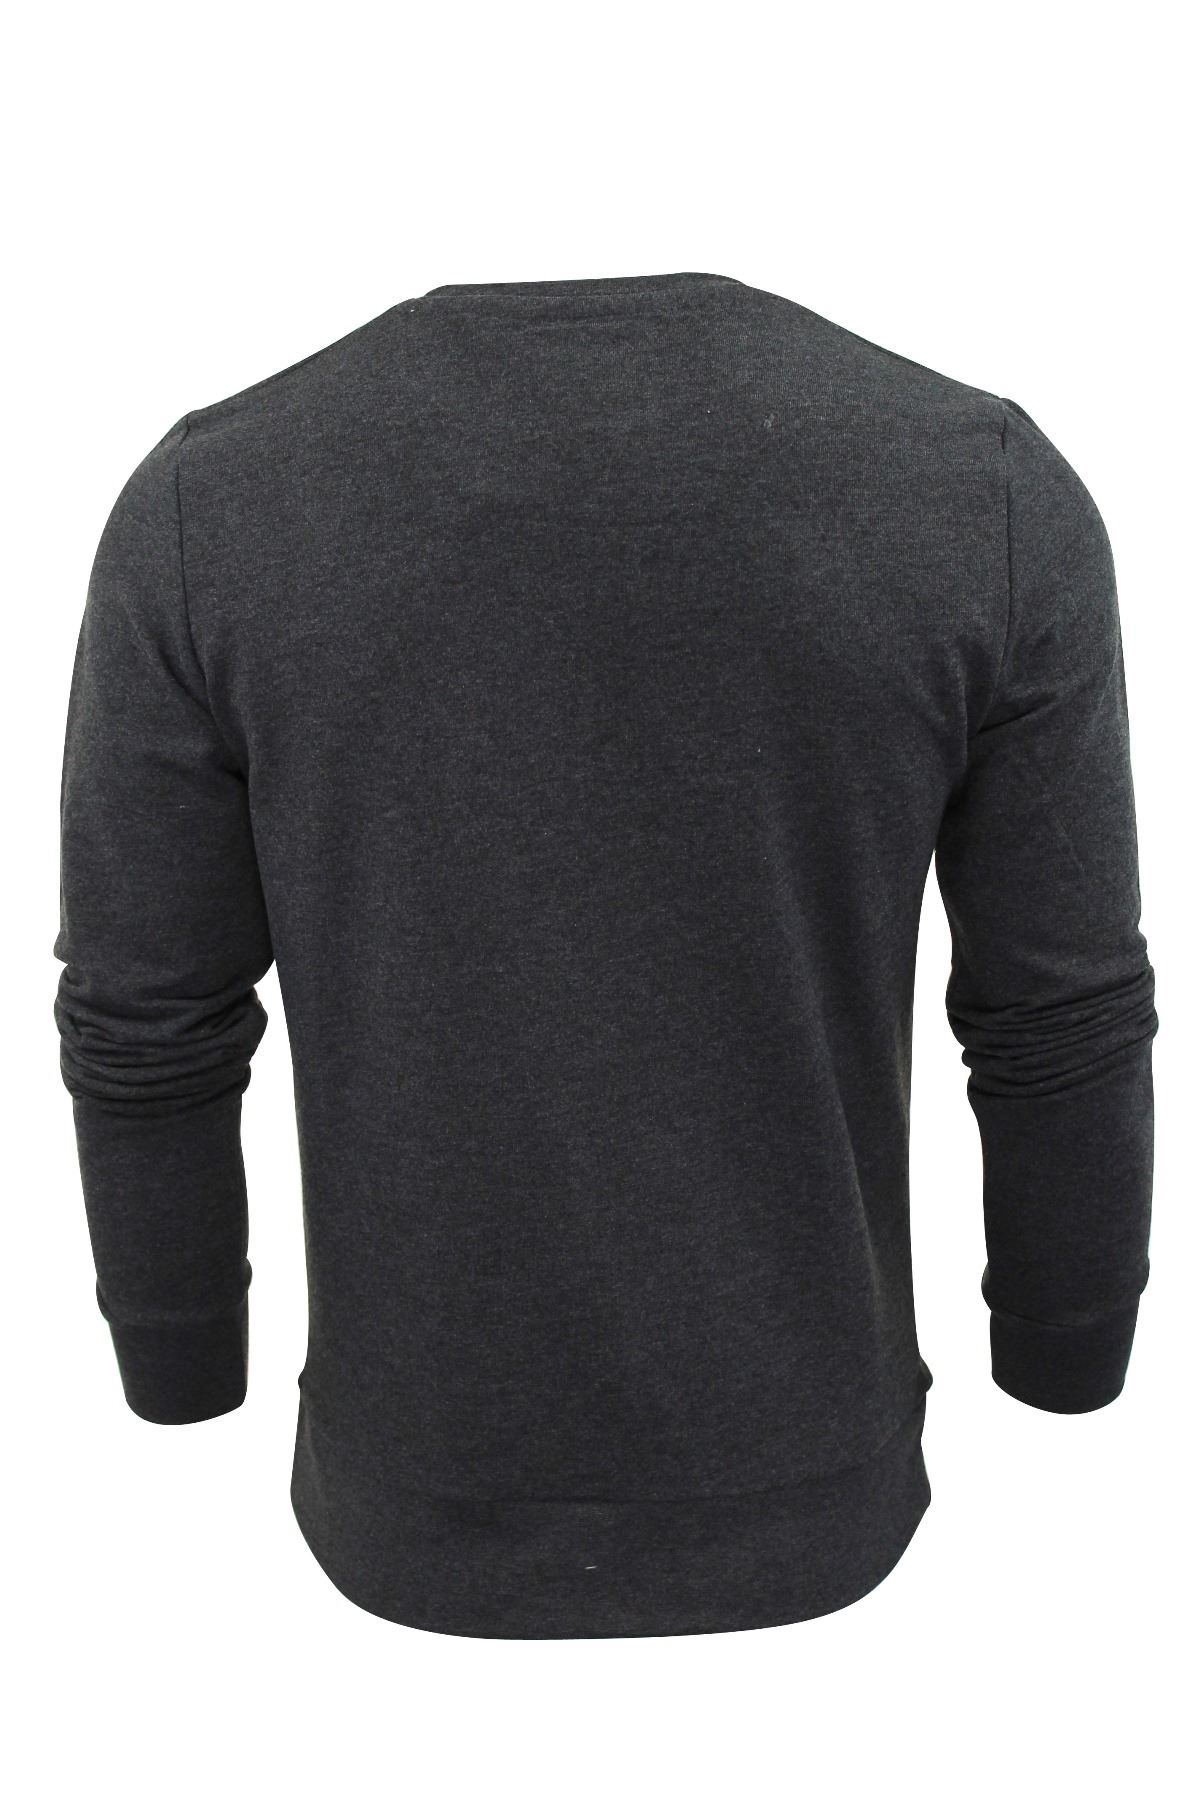 Mens-Sweater-Jumper-Brave-Soul-Jones-Crew-Neck-Sweatshirt thumbnail 3